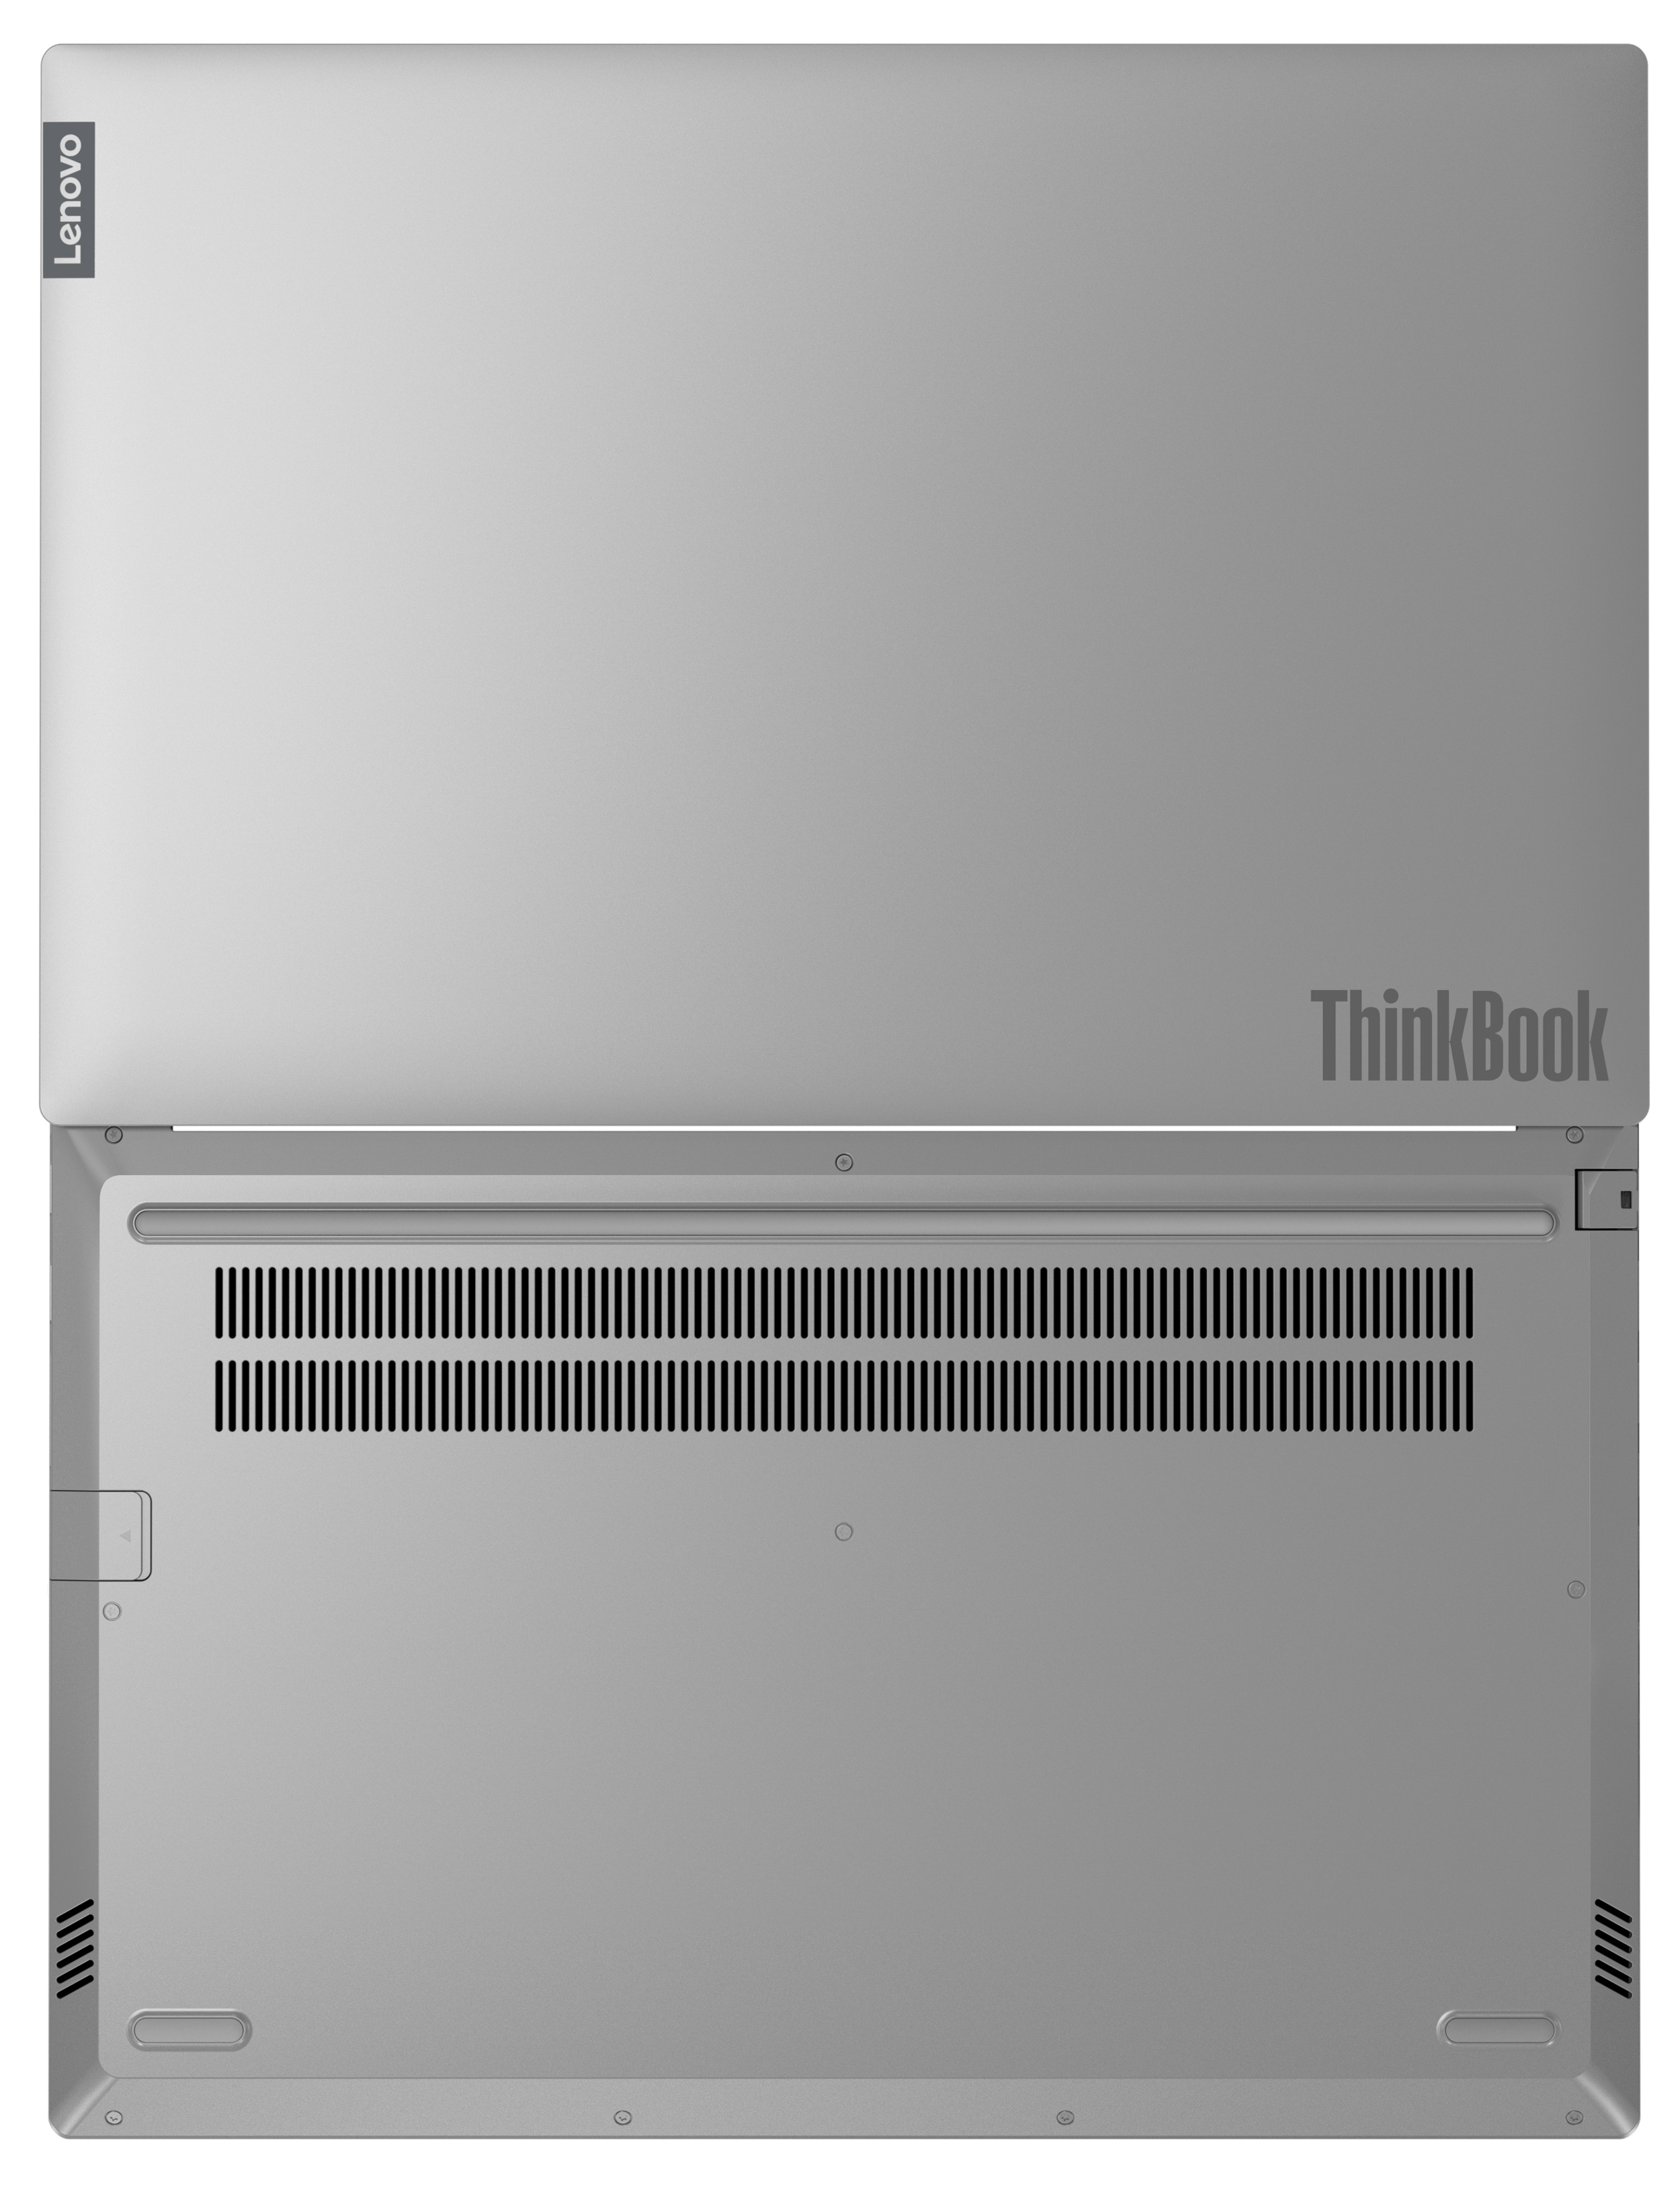 Фото  Ноутбук ThinkBook 15-IIL Mineral Grey (20SM0081RU)